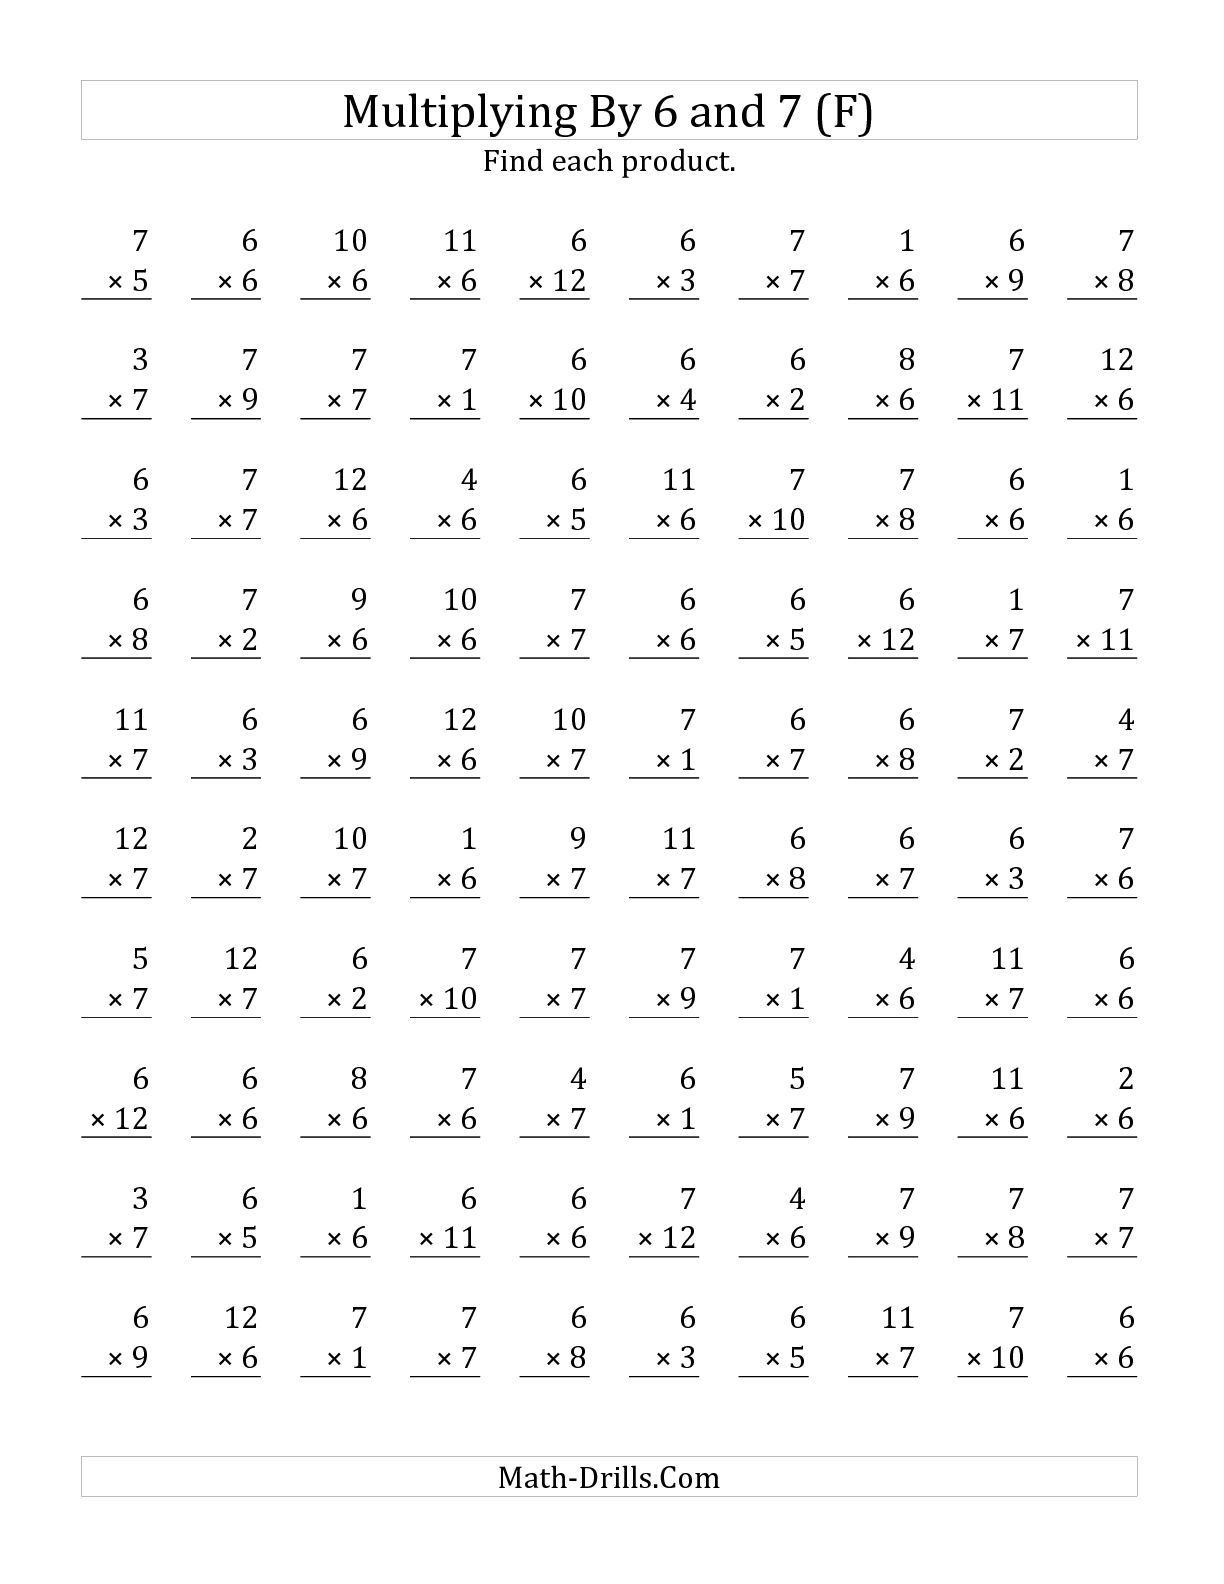 The Multiplying 1 To 12 By 6 And 7 F